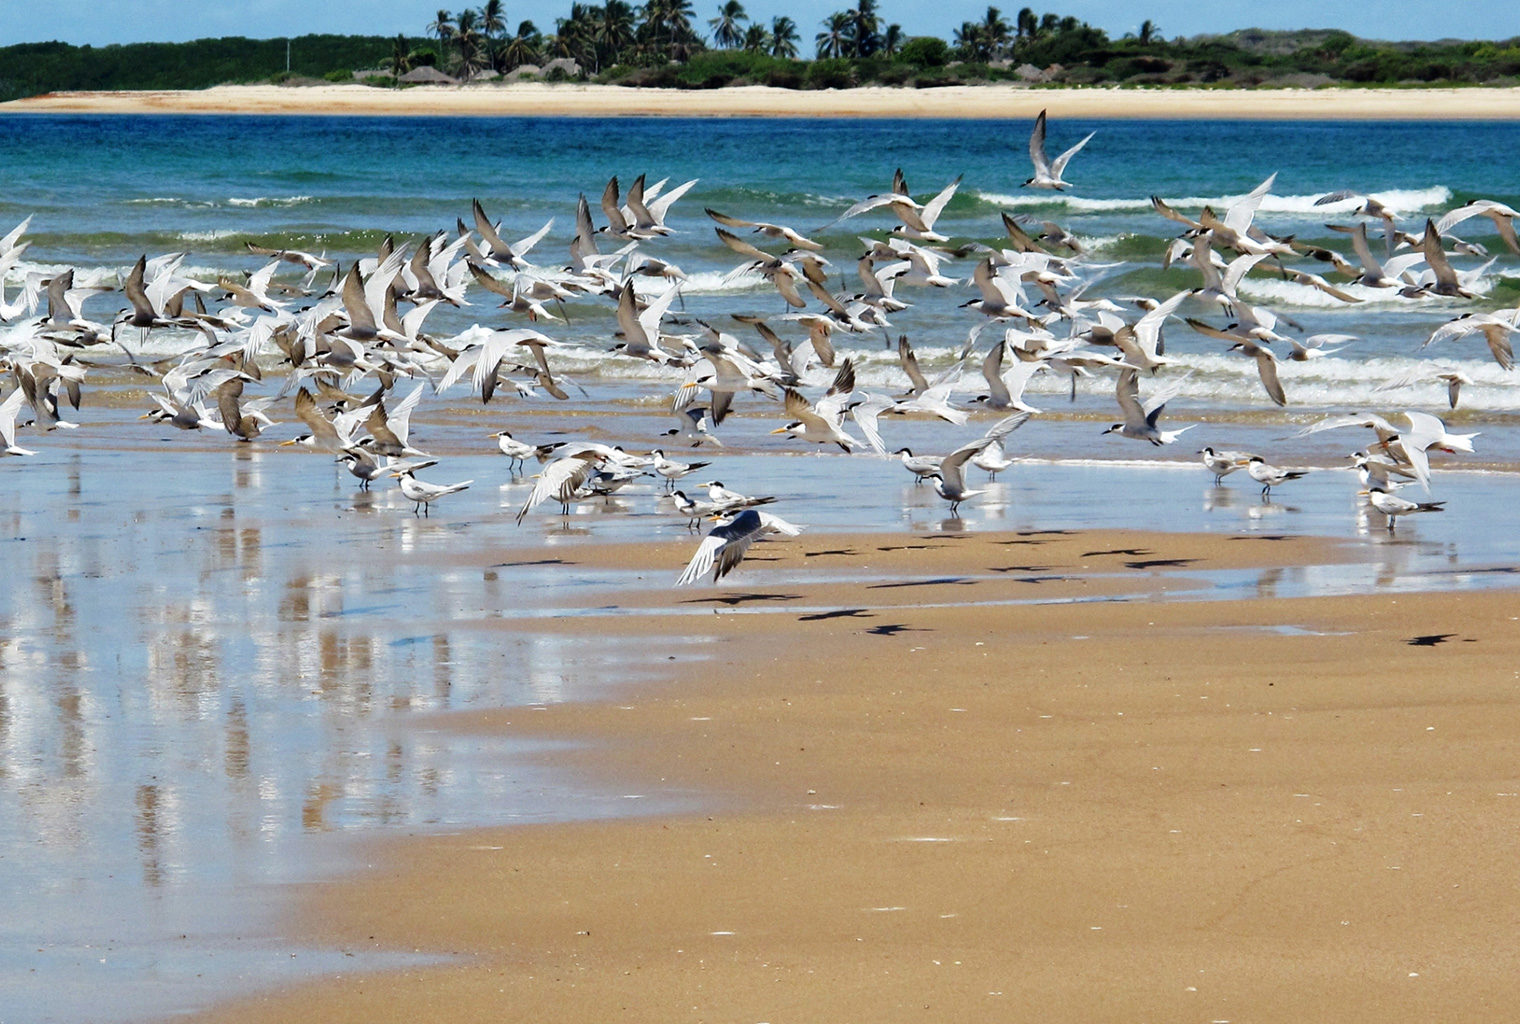 Mainland-Coast-Kenya-Birds-Beach